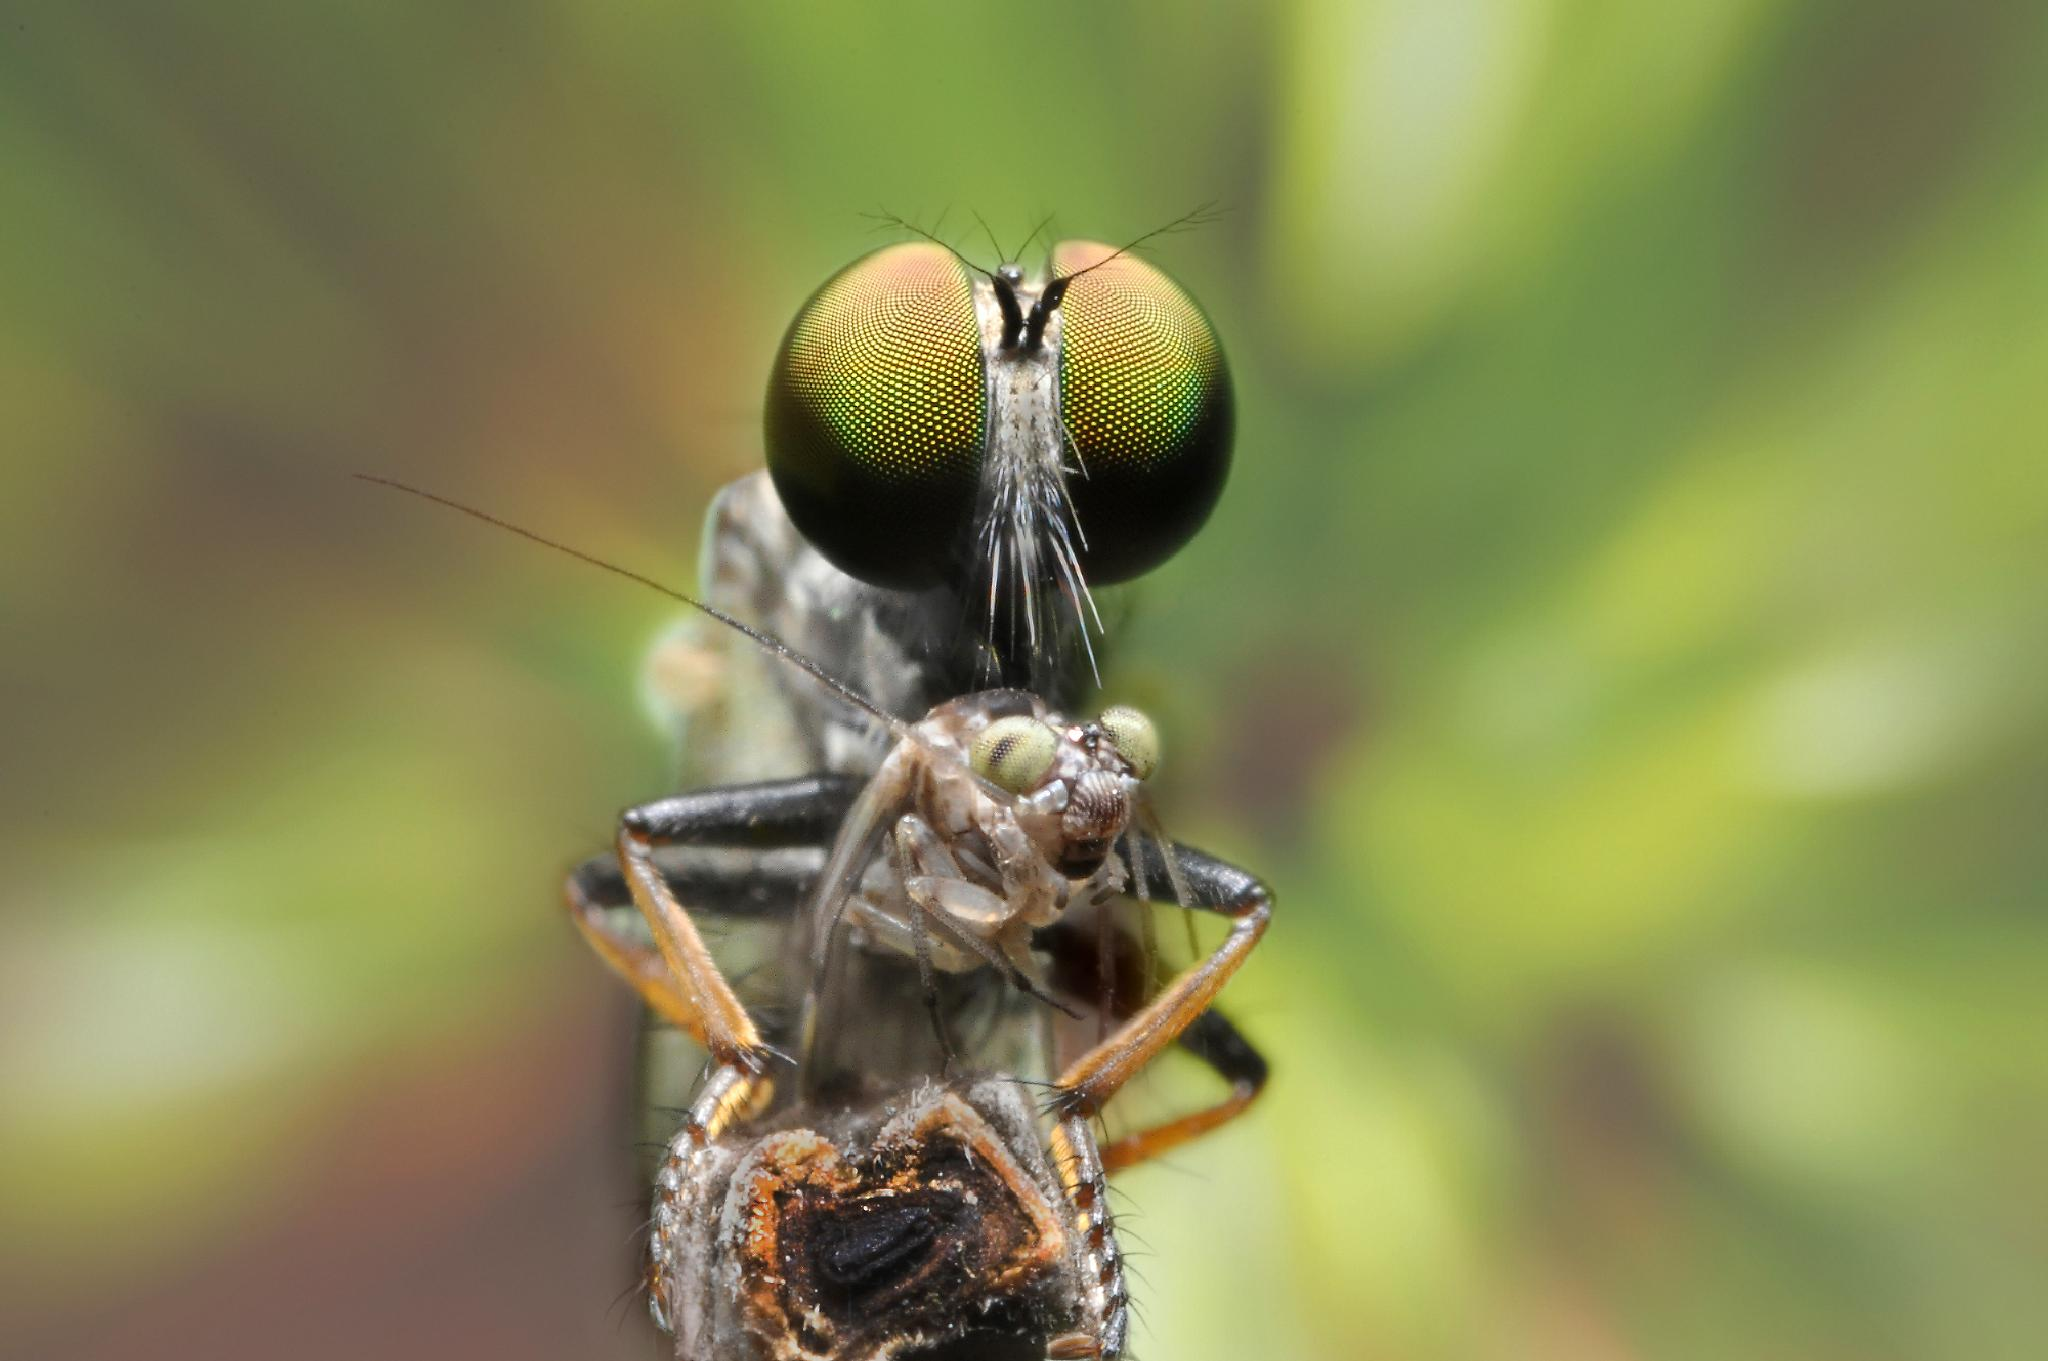 Robber fly with prey by damrongrat